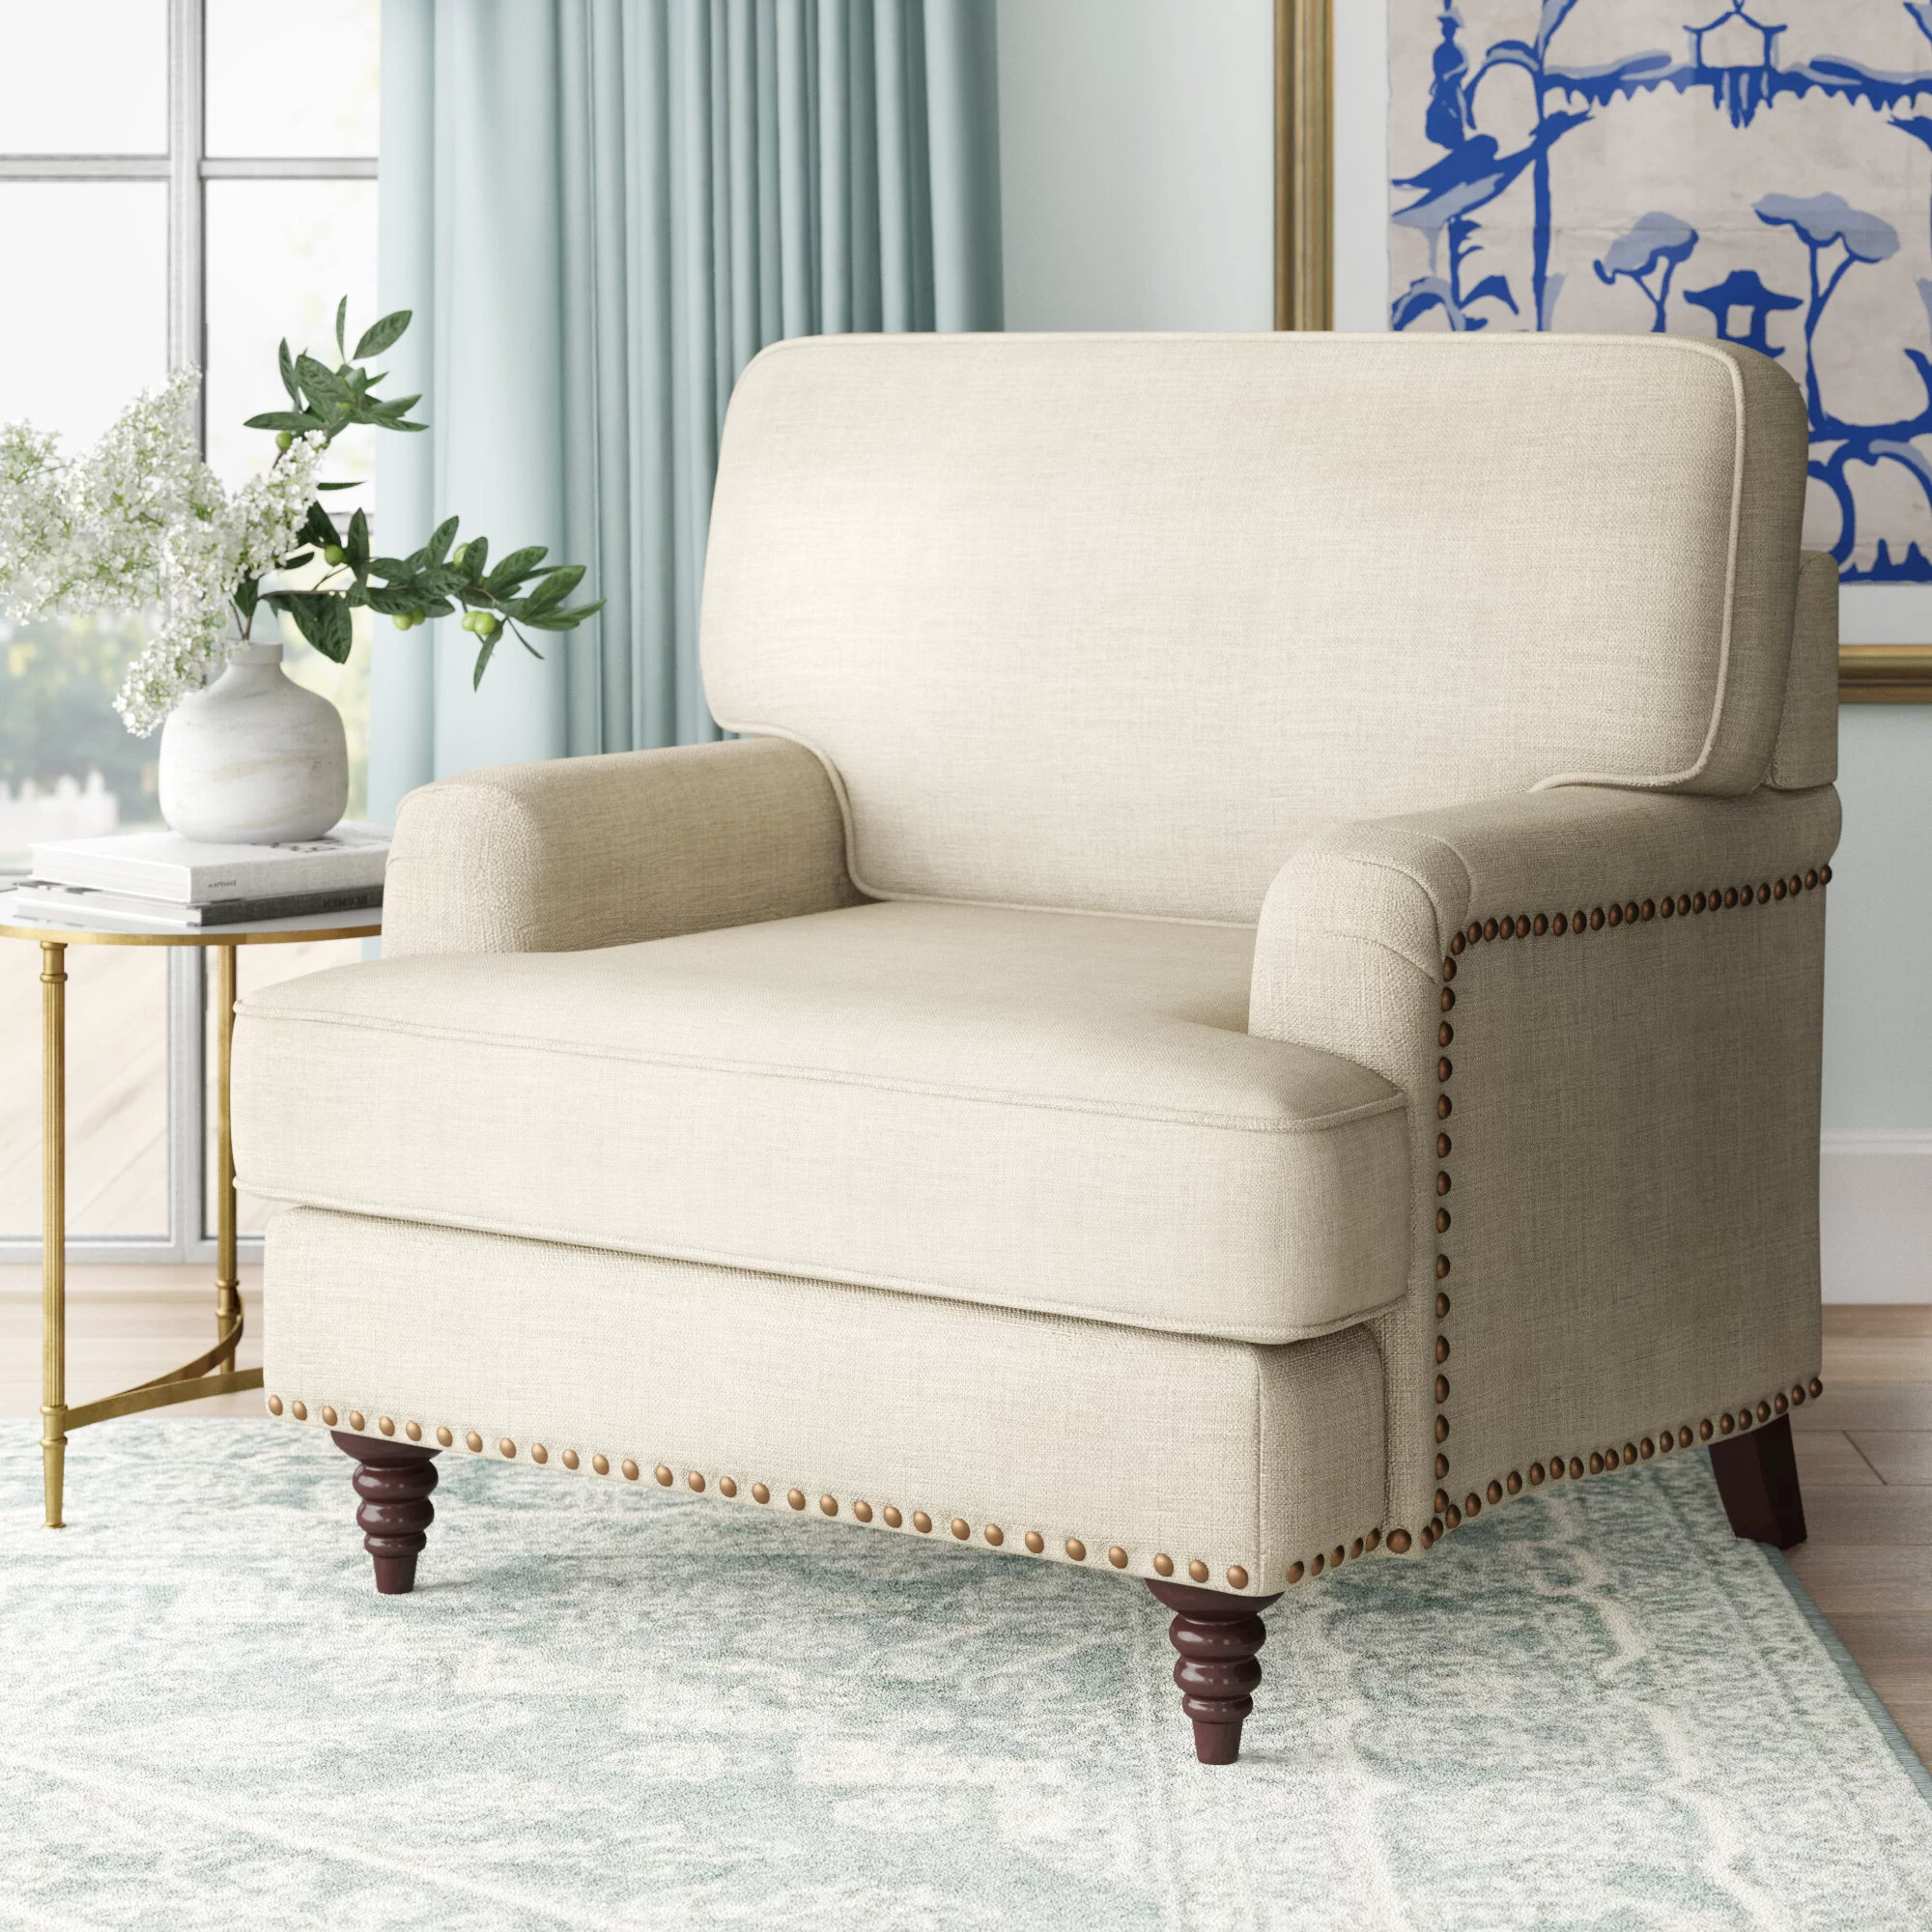 Borst Armchairs For Recent Armchair (View 9 of 20)